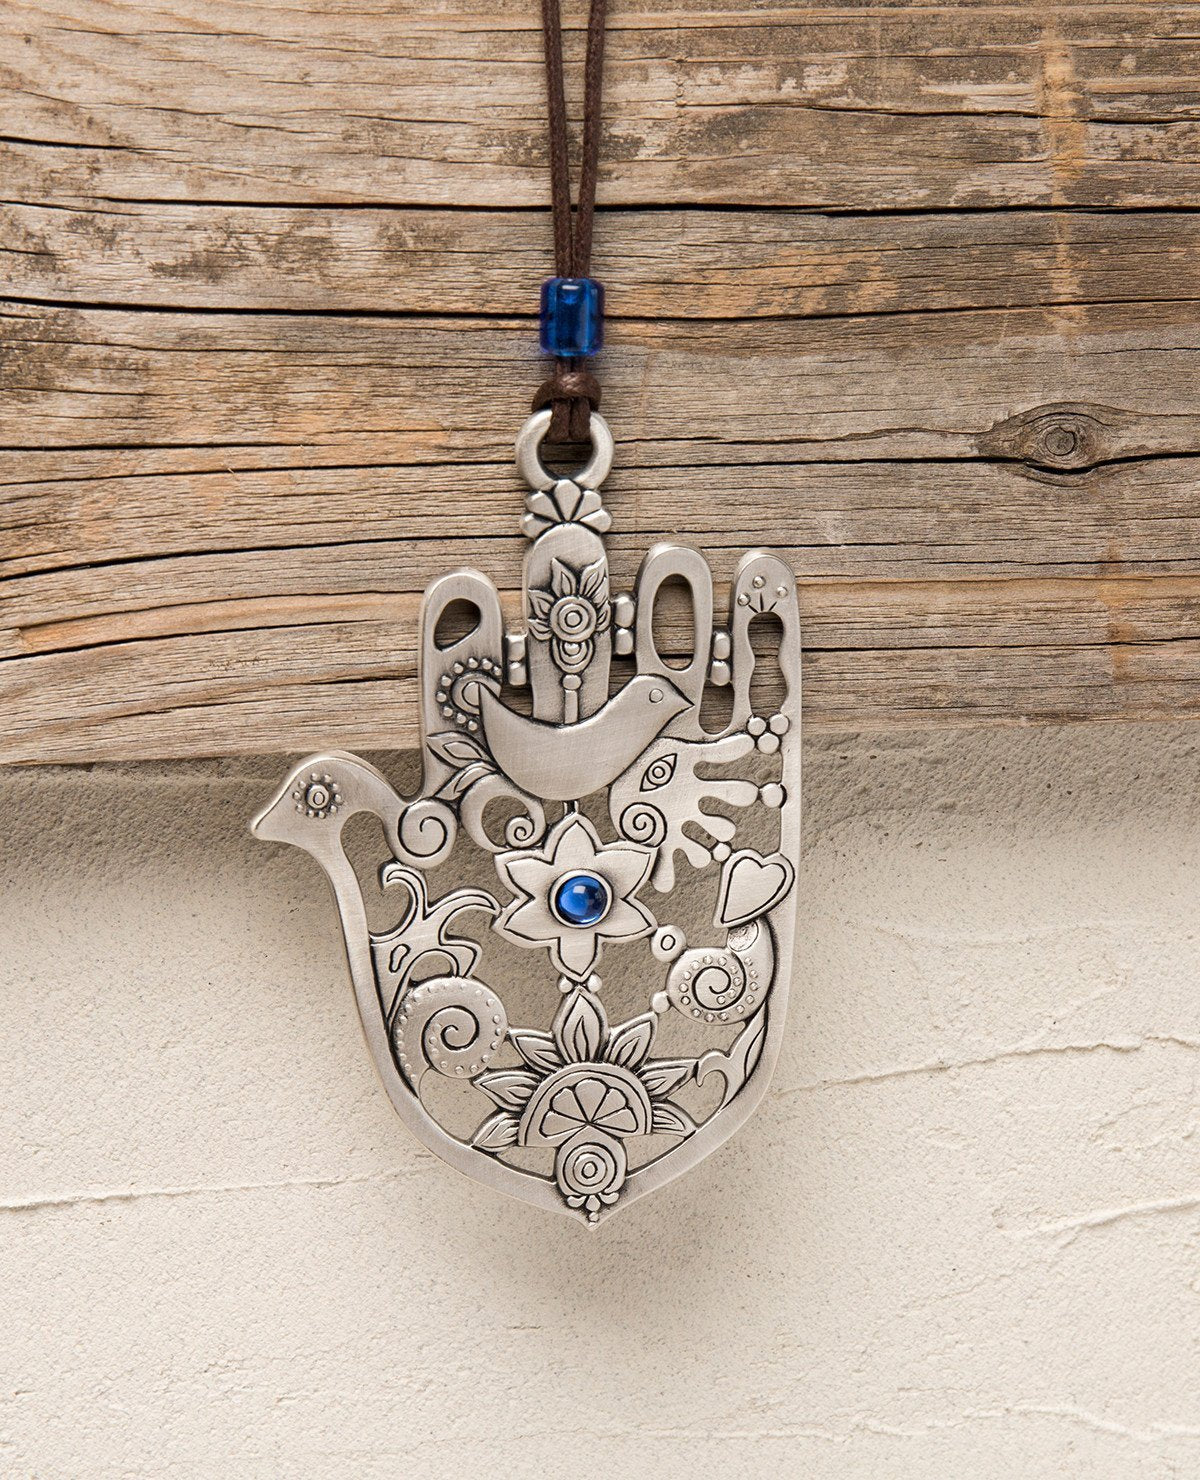 A subtle, authentic and artistically designed Hamsa hanging ornament. The Hamsa is coated in sterling silver and is designed as spaces and embossments of blessing motifs. At the center of the Hamsa is a flower inlaid with a blue Swarovski stone and above it an embossed dove. The thumb of the Hamsa is designed as the head of a dove and the ornament in its entirety resembles the shape of both a Hamsa and a dove. This is a charming and blessed hanging ornament that combines the qualities of the Hamsa for luck